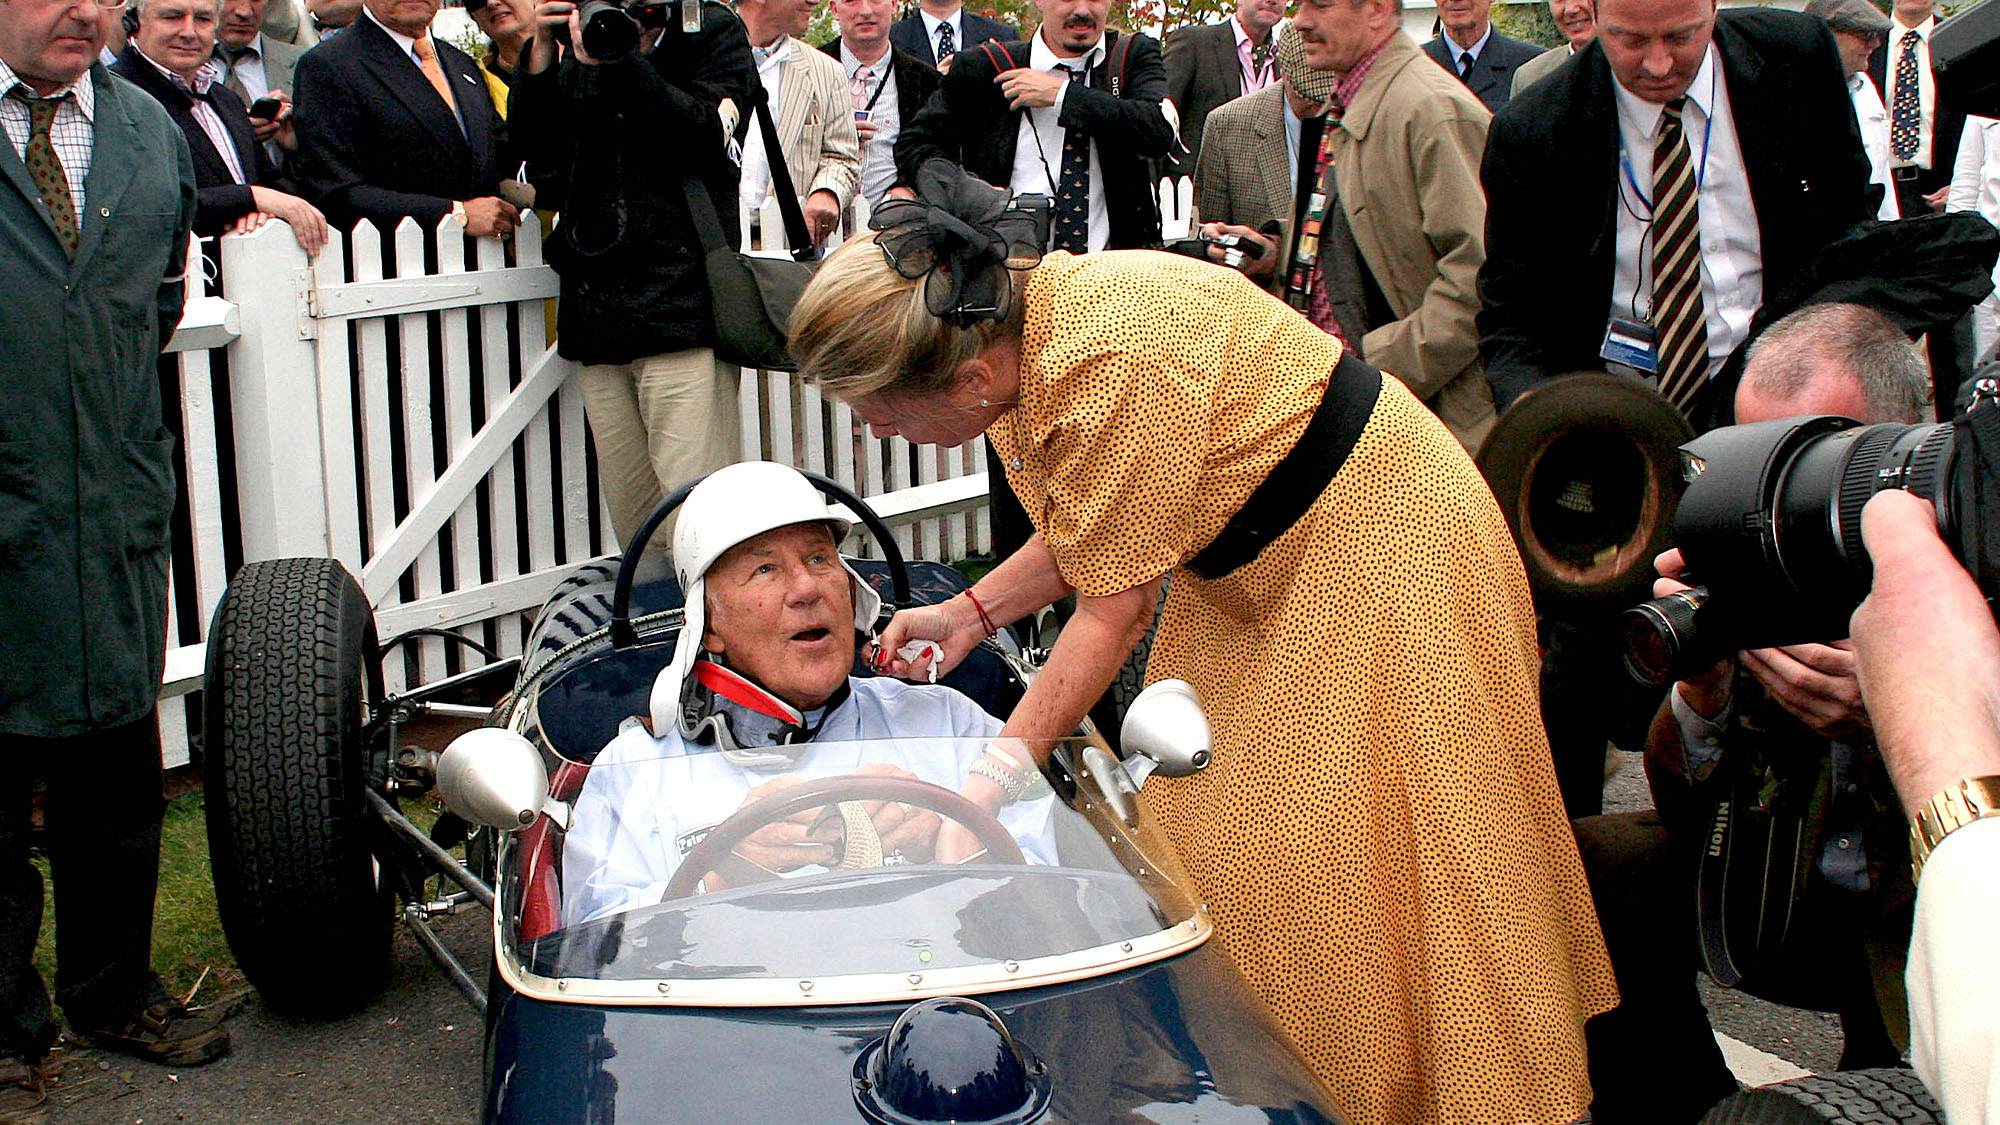 Susie Moss straps Stirling Moss in at the Goodwood revival